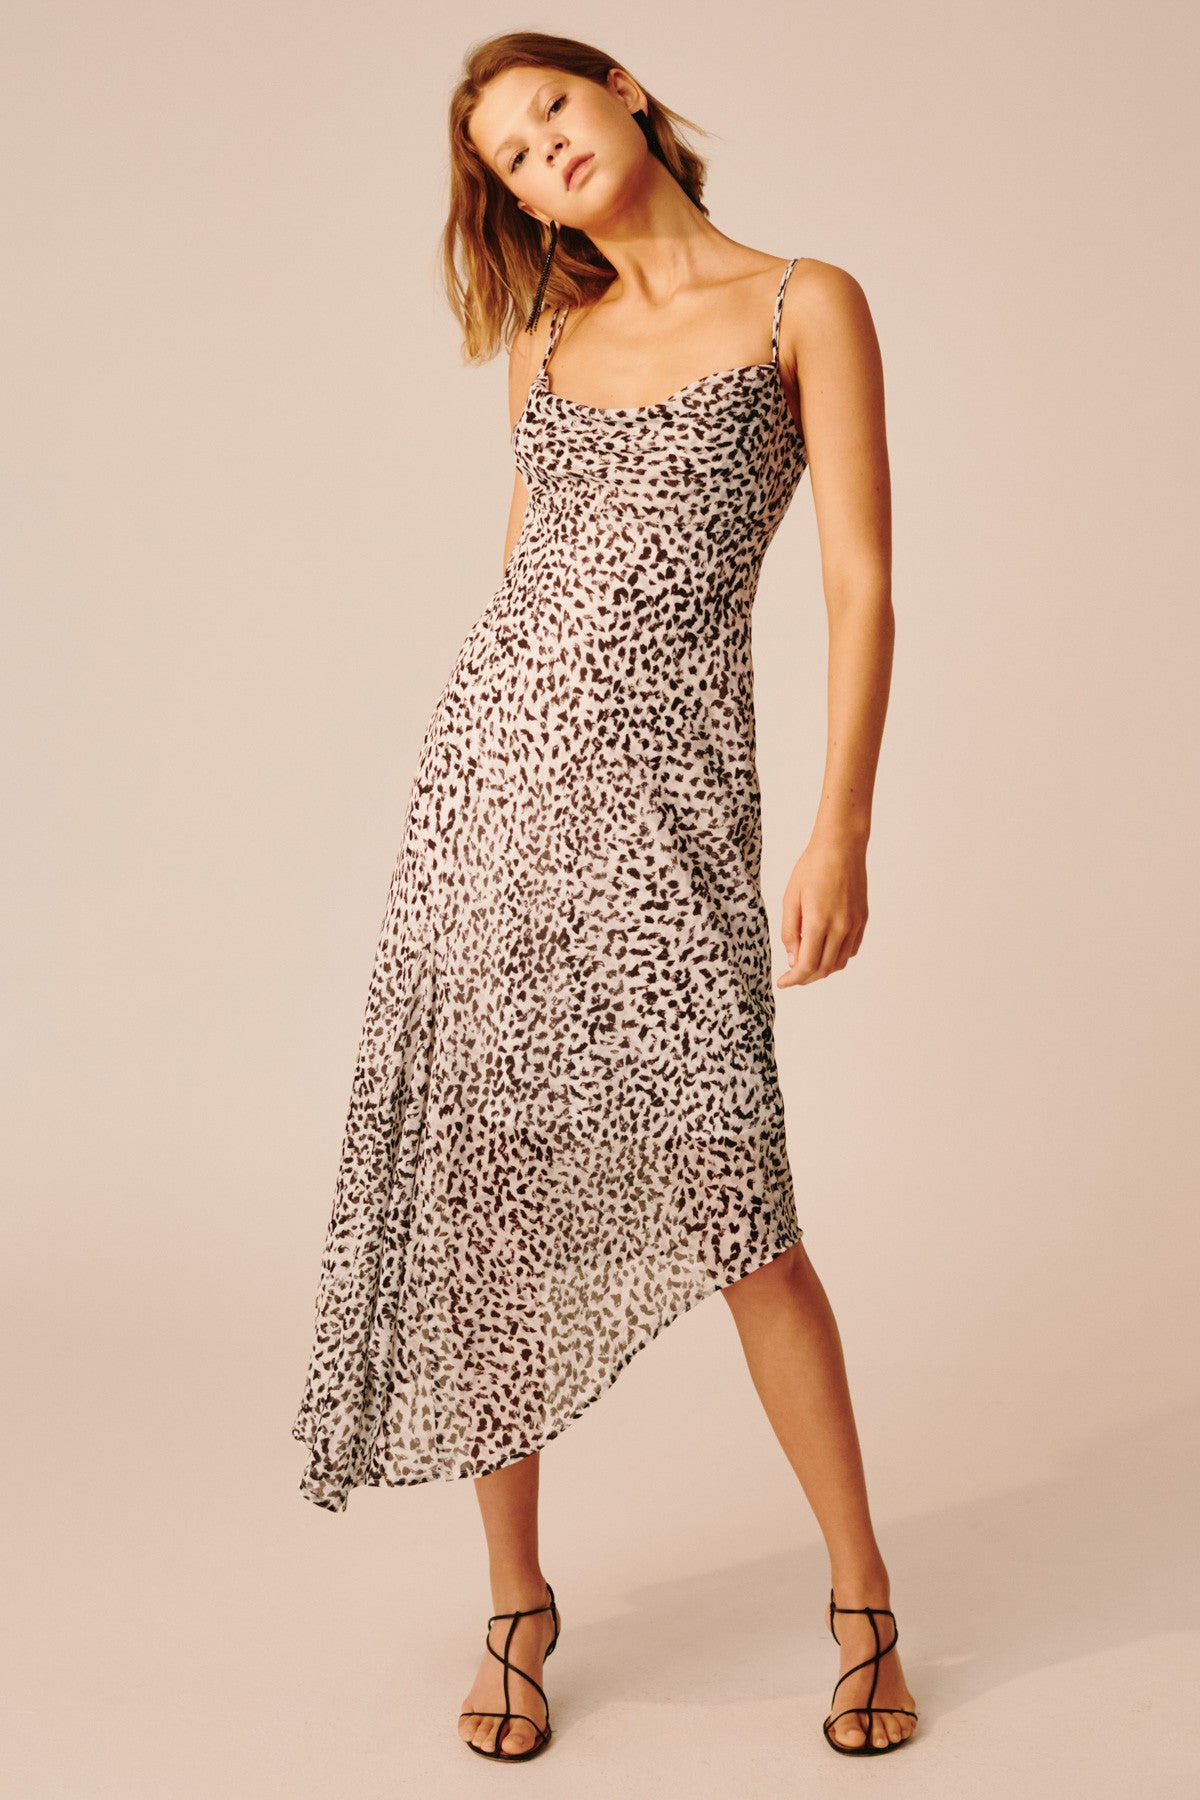 APPARENT MIDI DRESS ivory painted spot